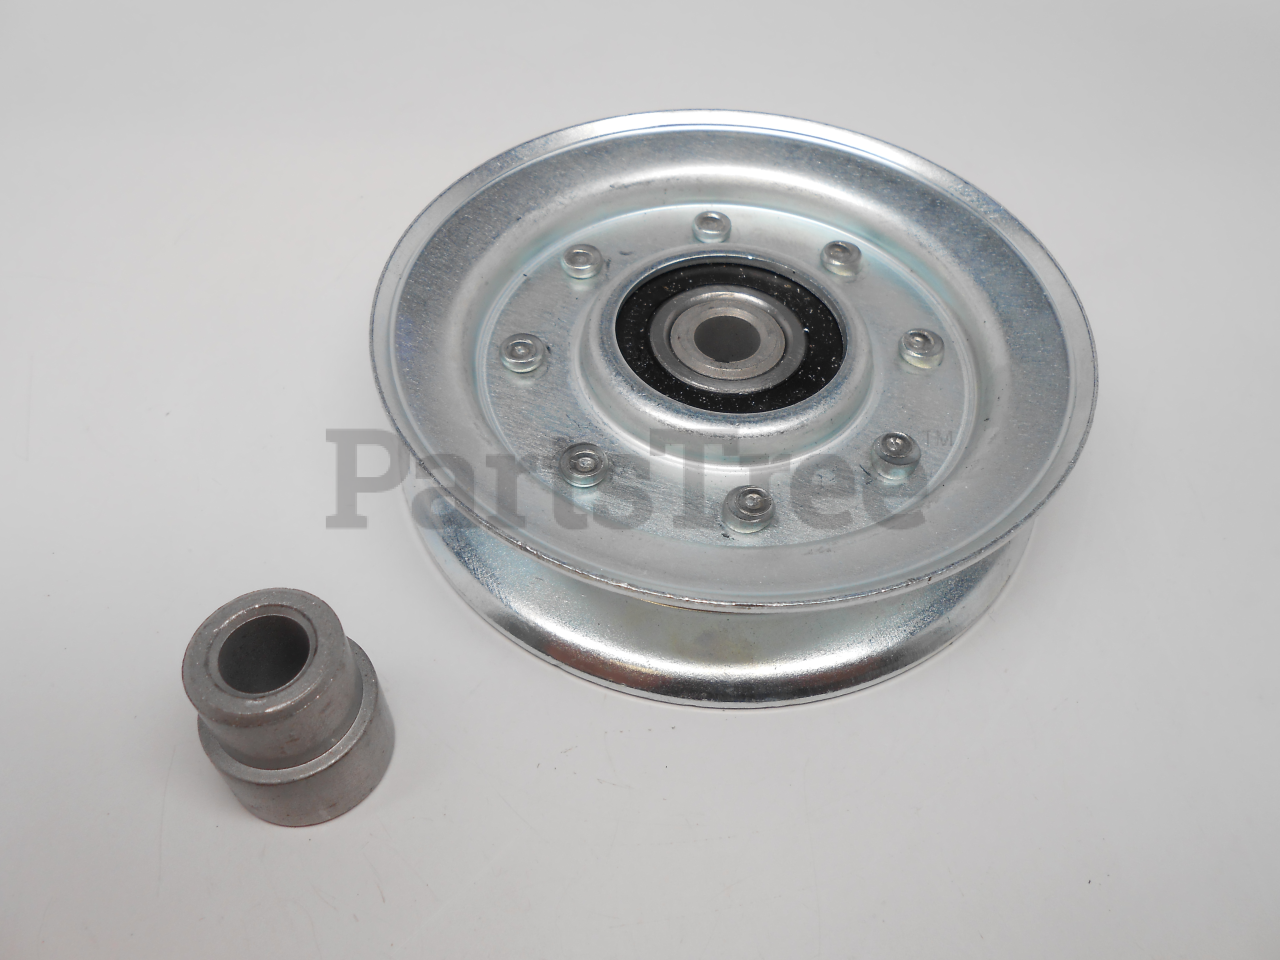 Simplicity Part 1685150, USE 1685150SM: PULLEY REPL KIT FOR